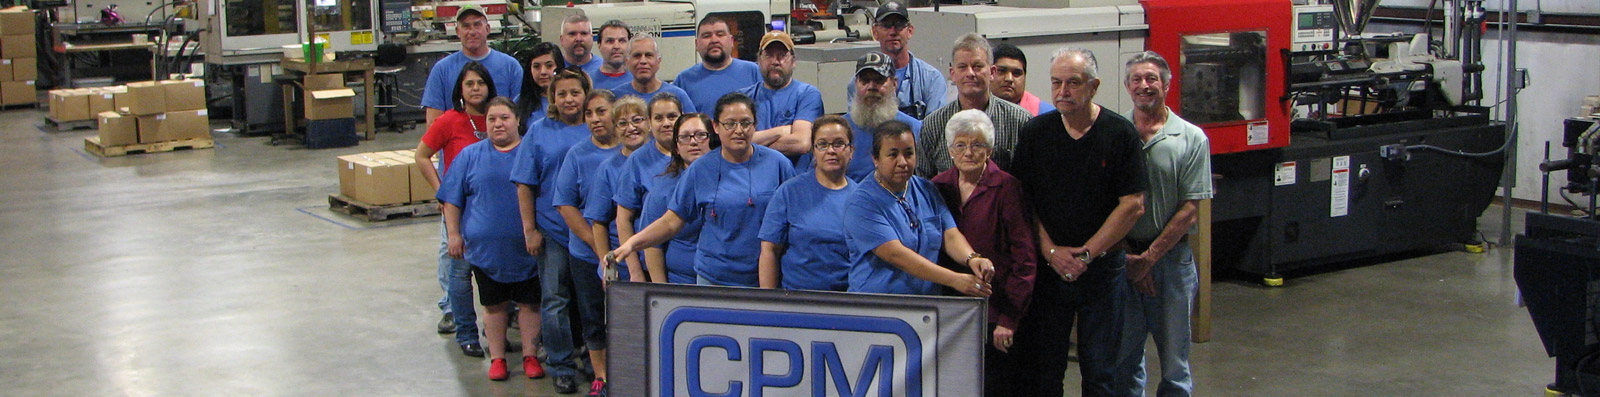 Our Team | Coastal Plastic Molding